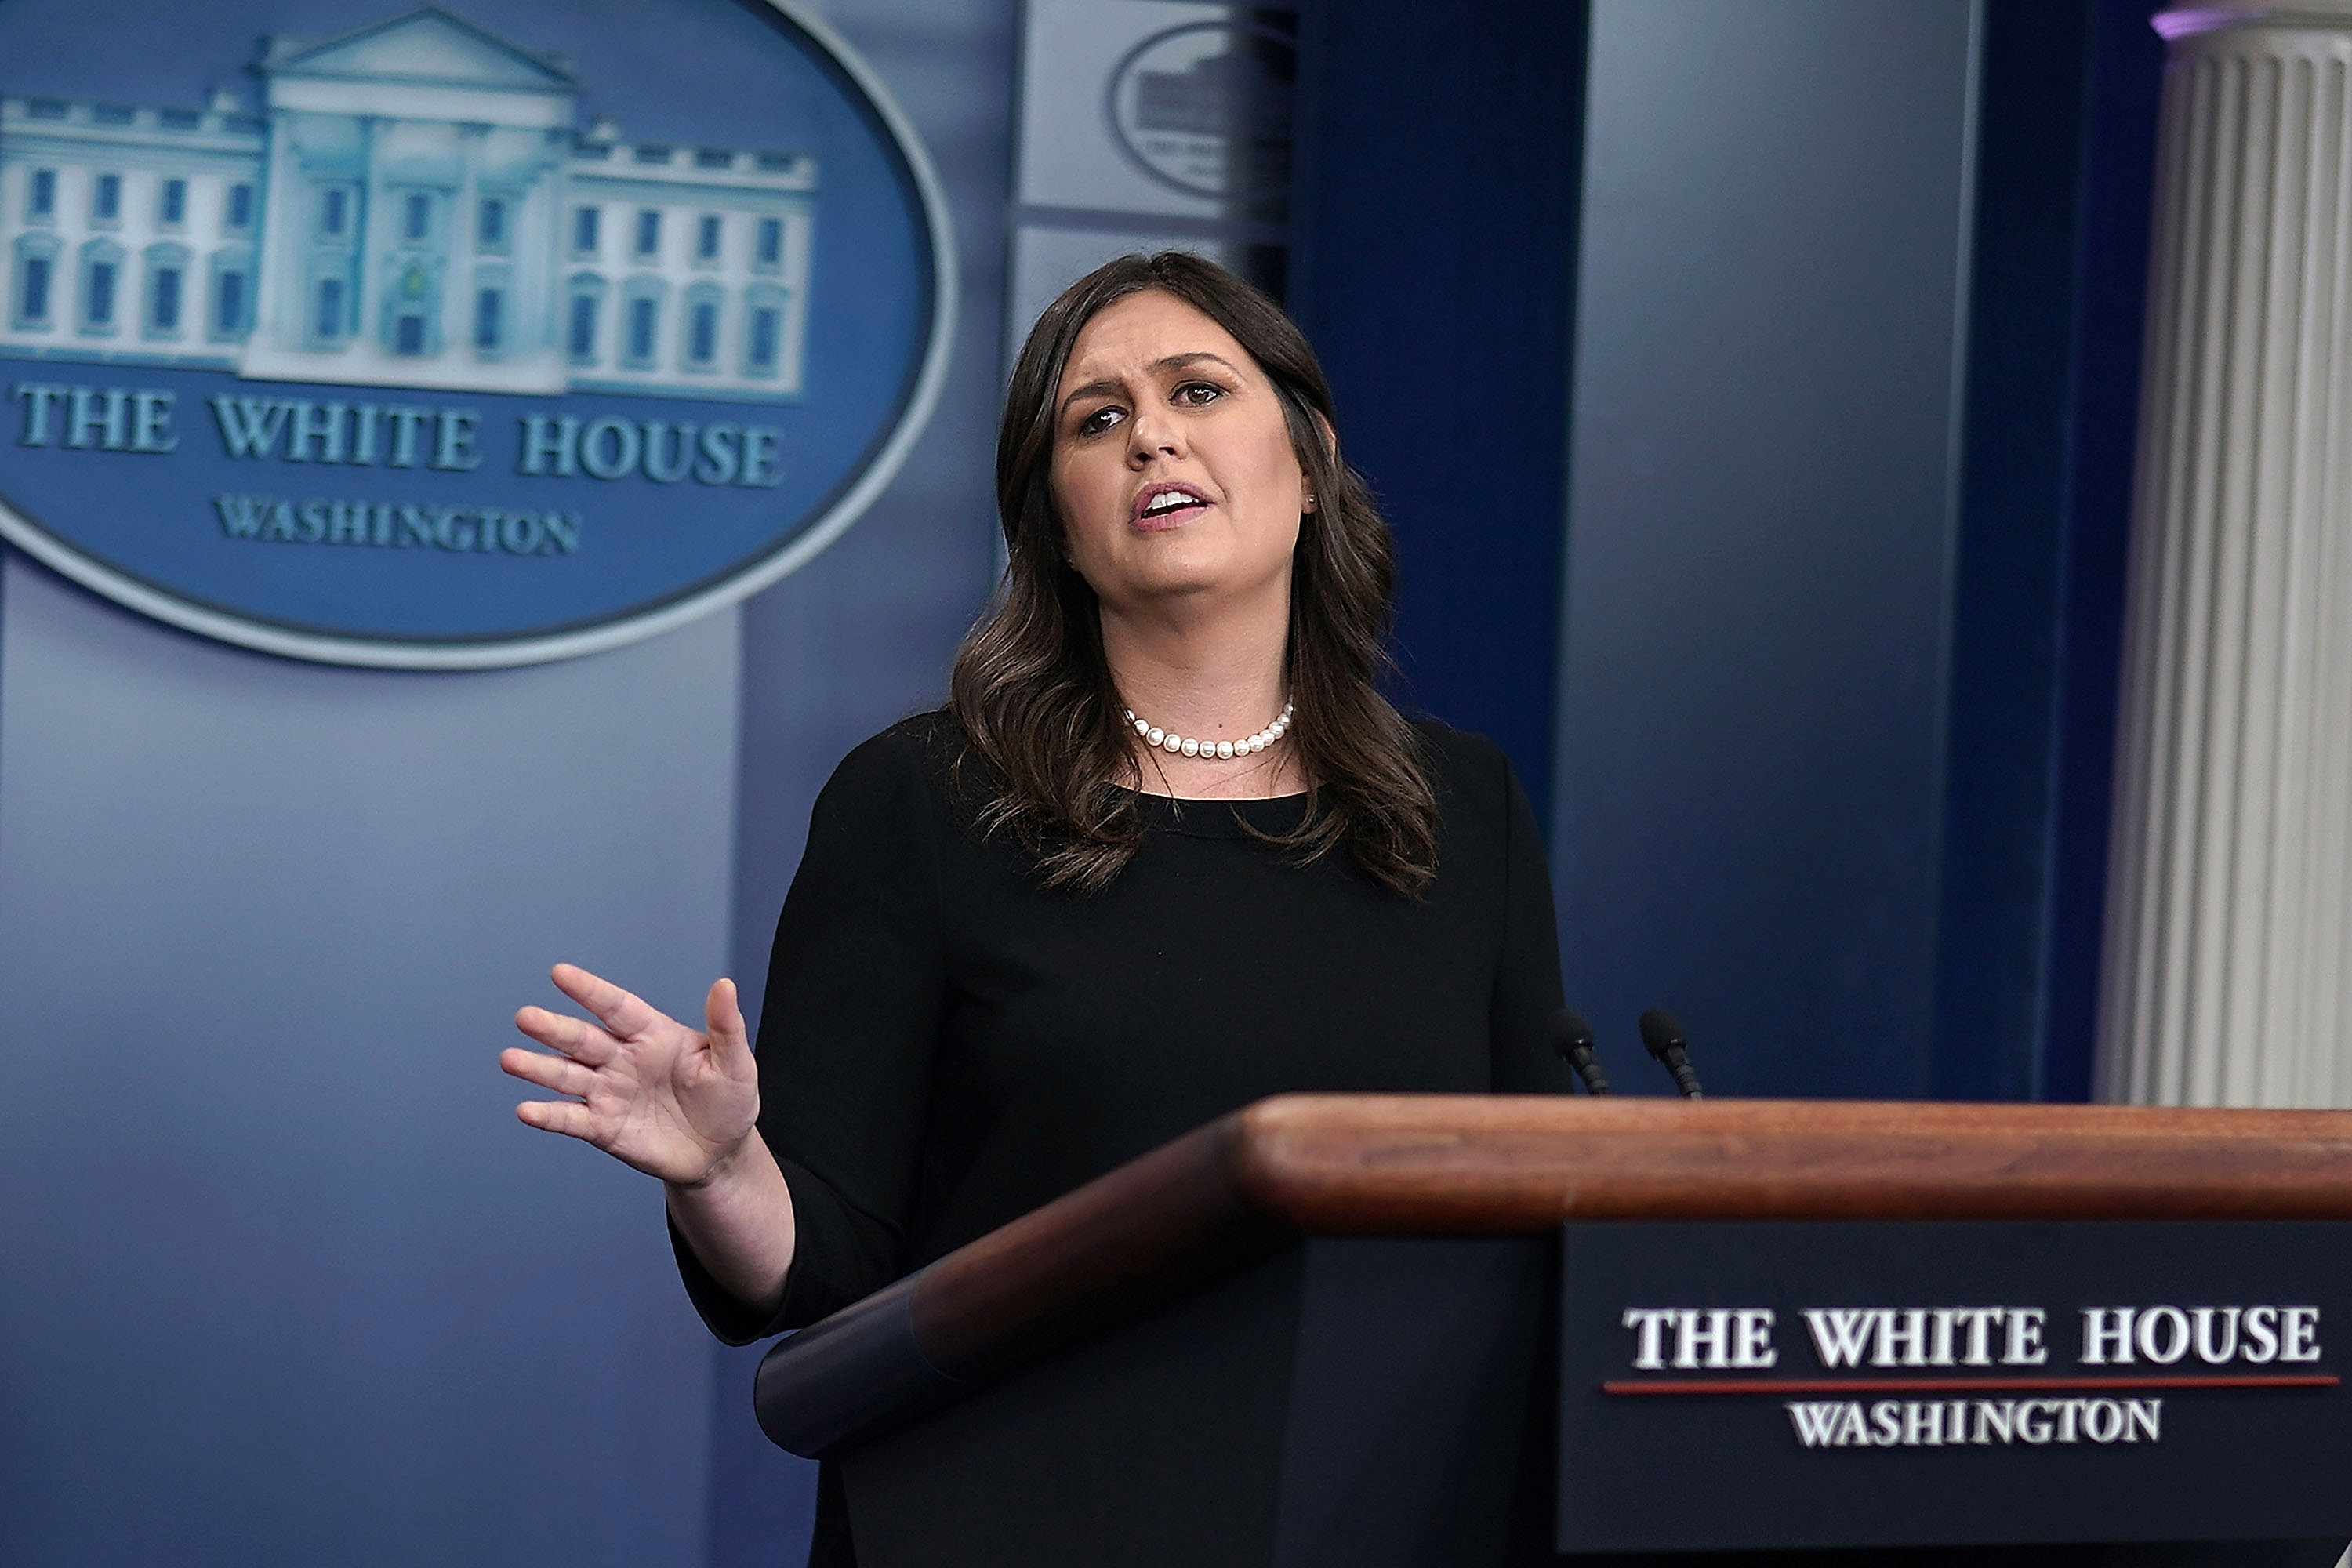 Sarah Sanders stands behind a podium, speaking to reporters.